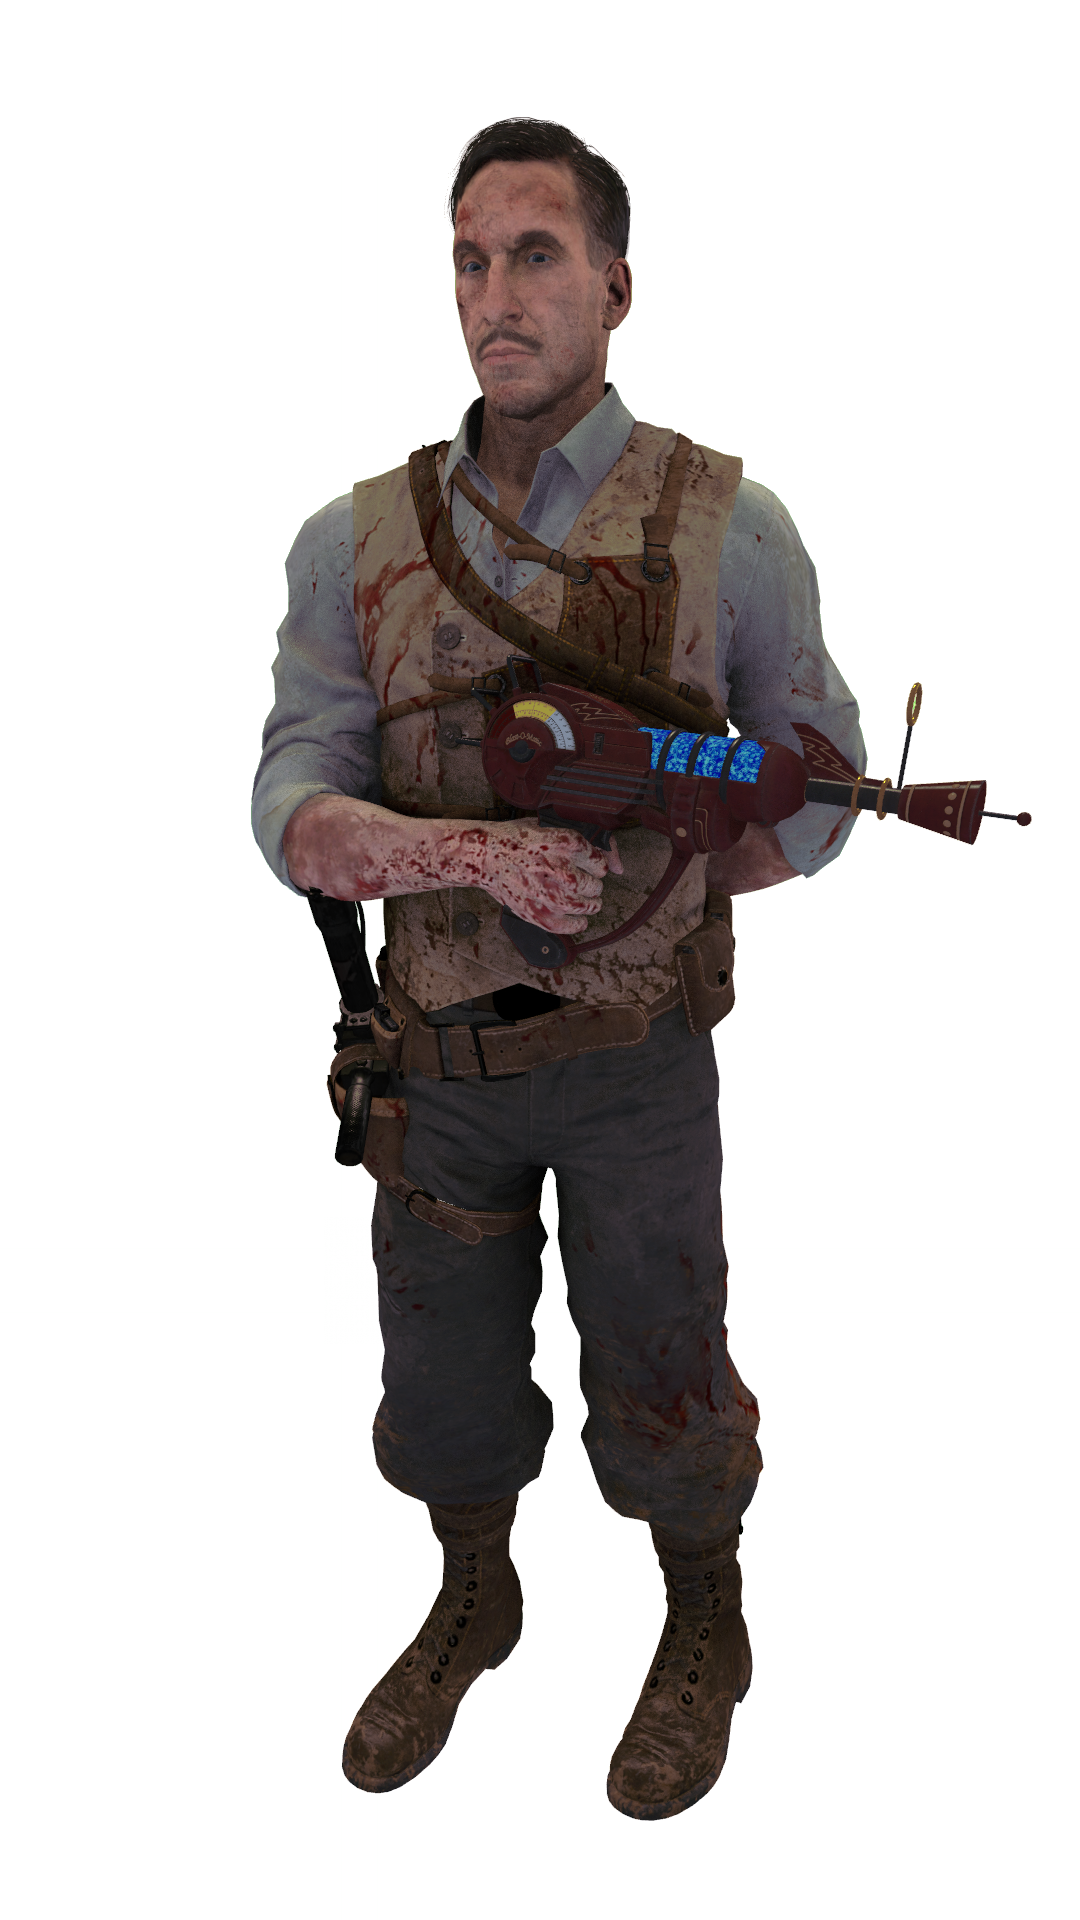 Richtofen drawing old. I made some sfm